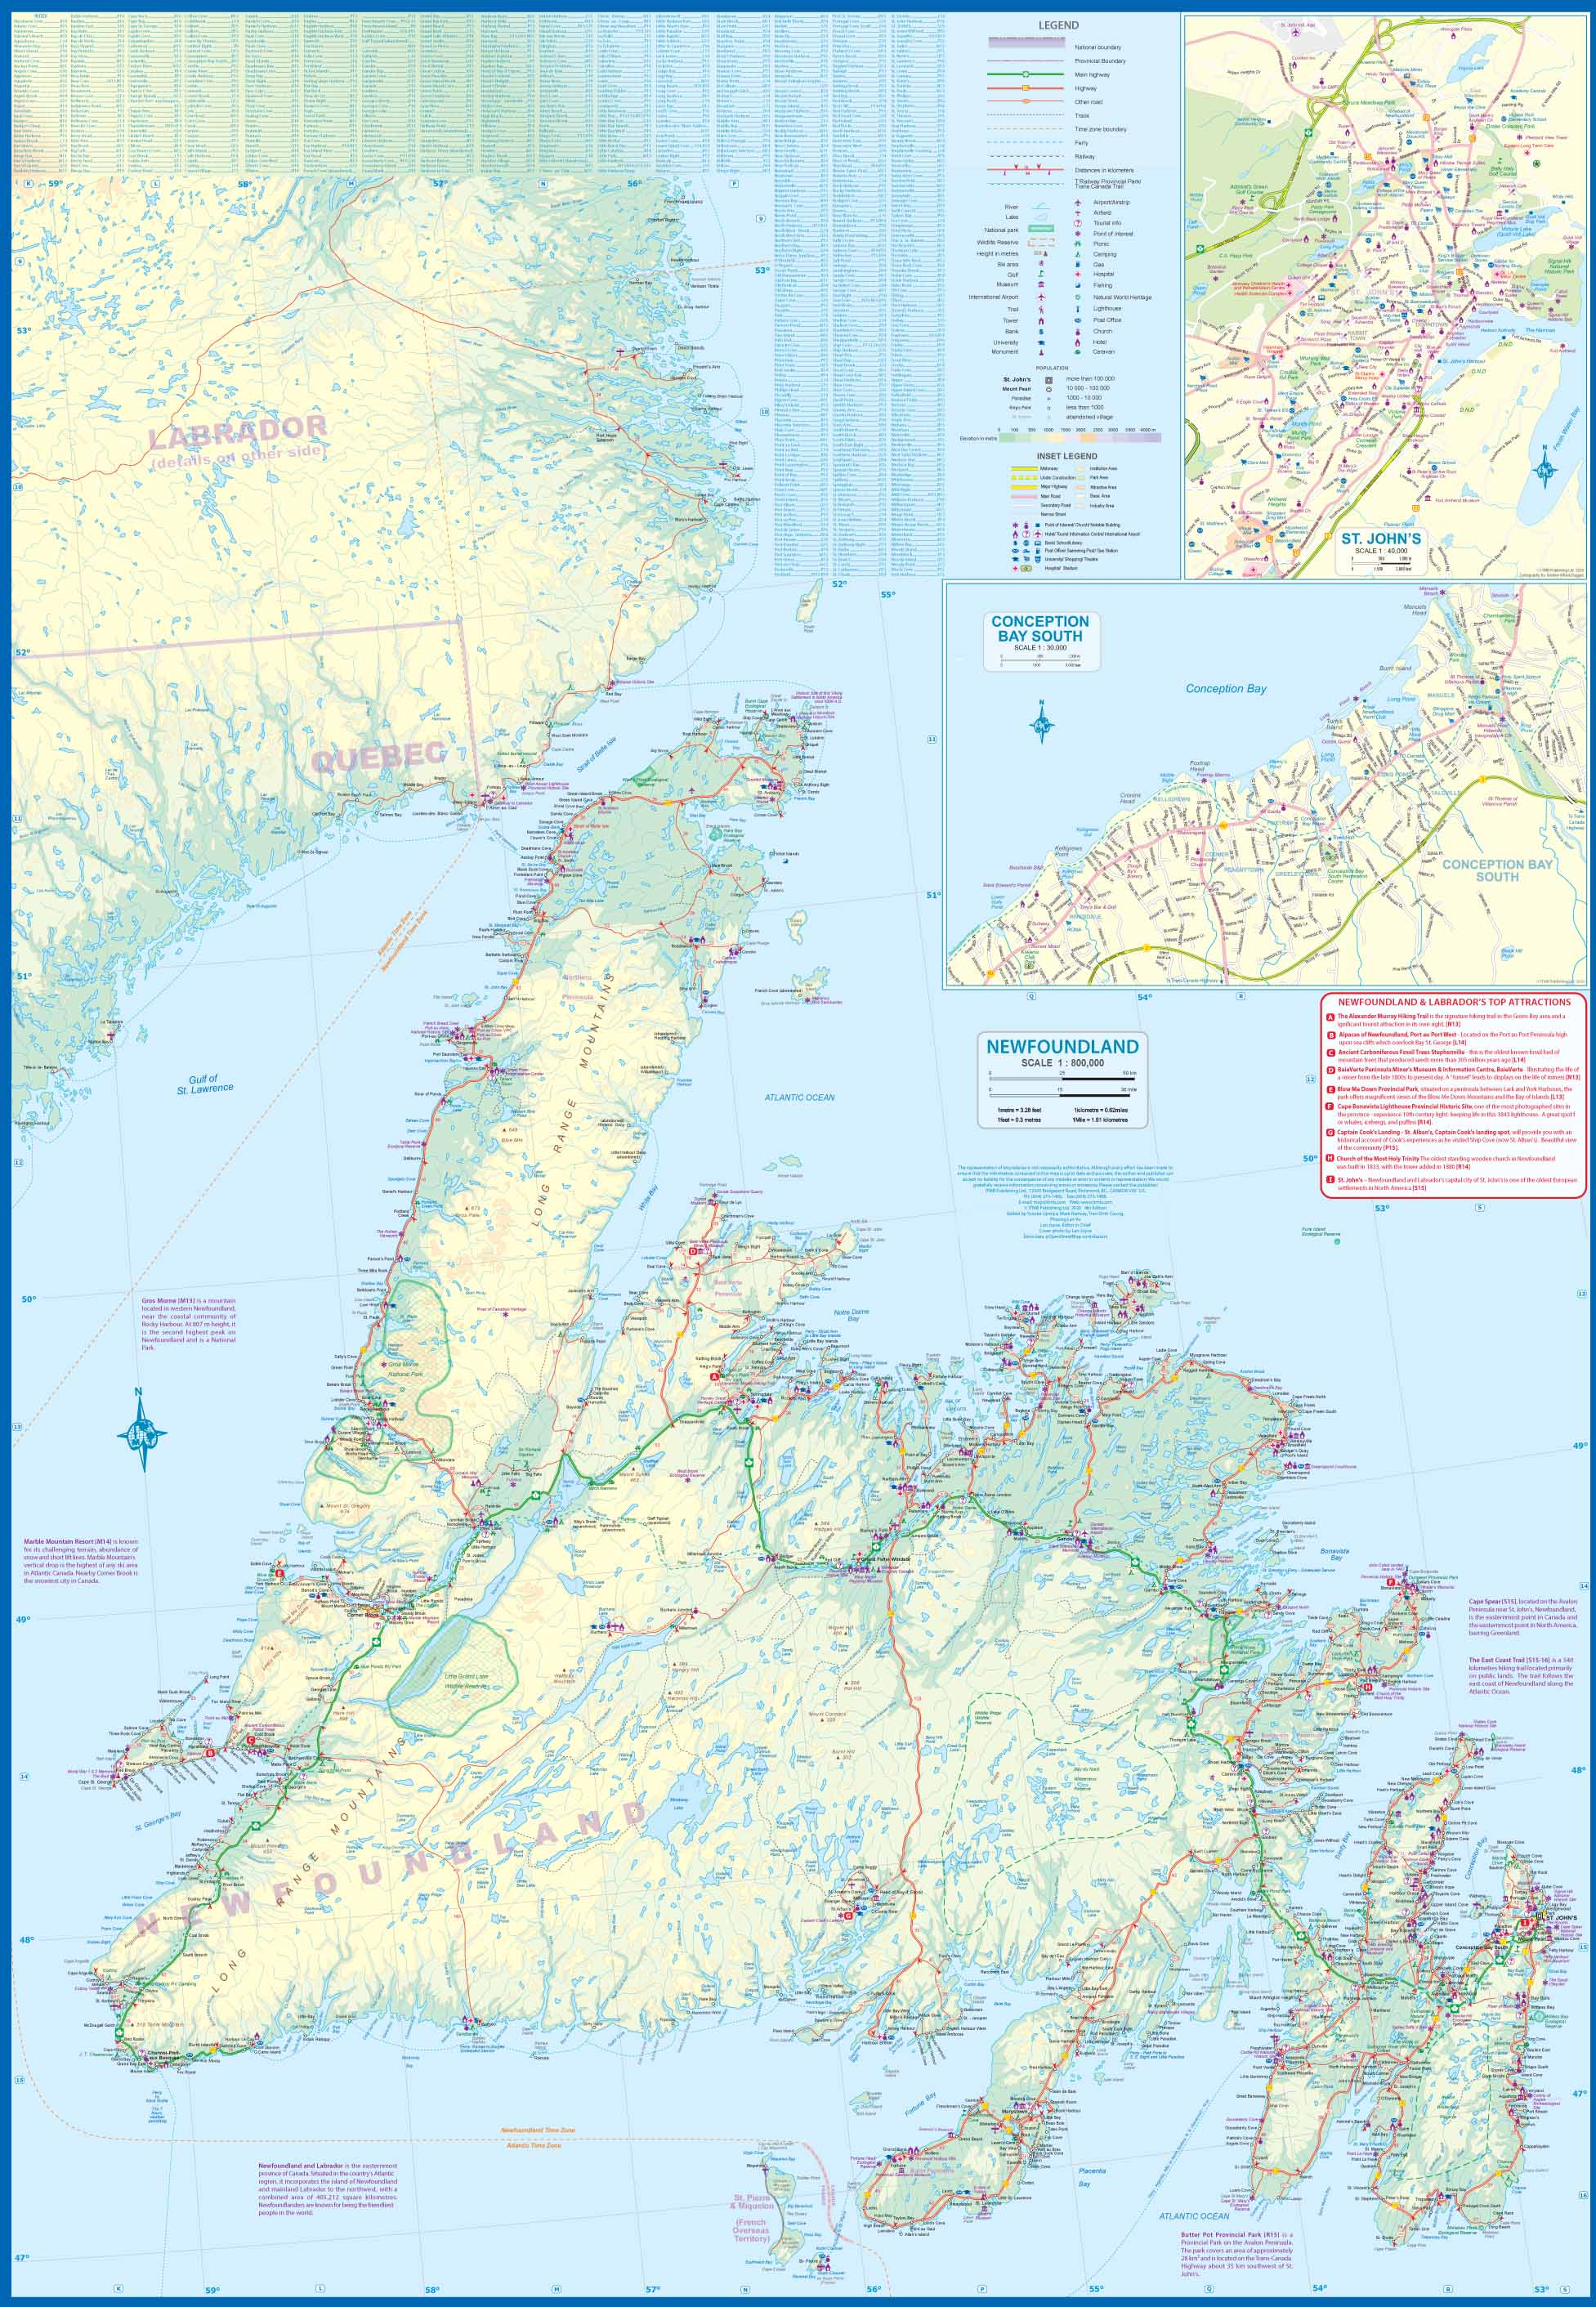 Newfoundland Road Map Maps for travel, City Maps, Road Maps, Guides, Globes, Topographic